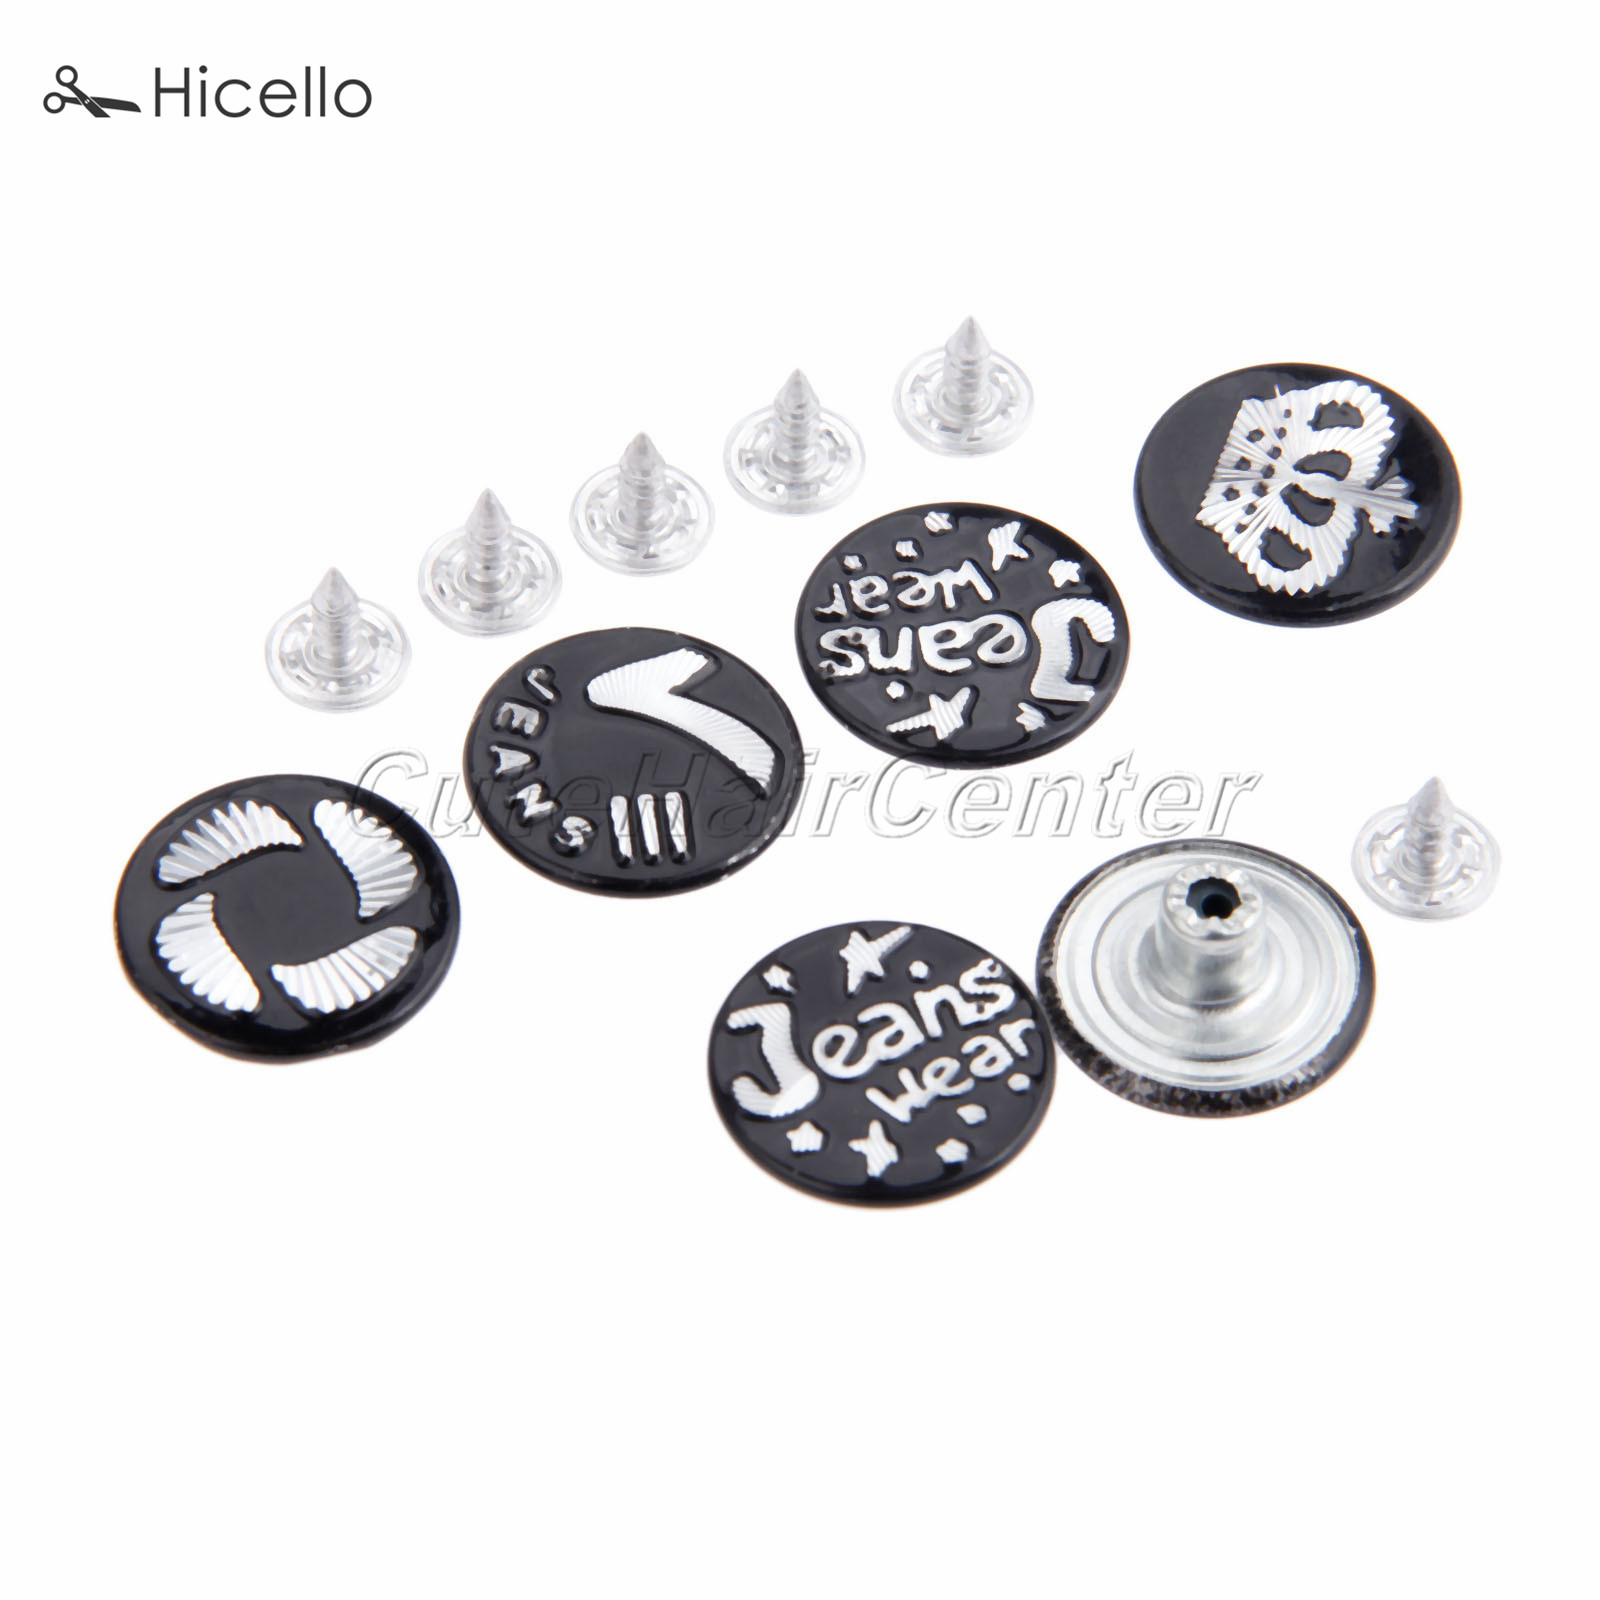 Kind-Hearted 50sets Jeans Buttons With Nails Metal 20mm Black Mixed Patterns For Pants Shoes Boots Handbags Leather Craft Hicello Apparel Sewing & Fabric